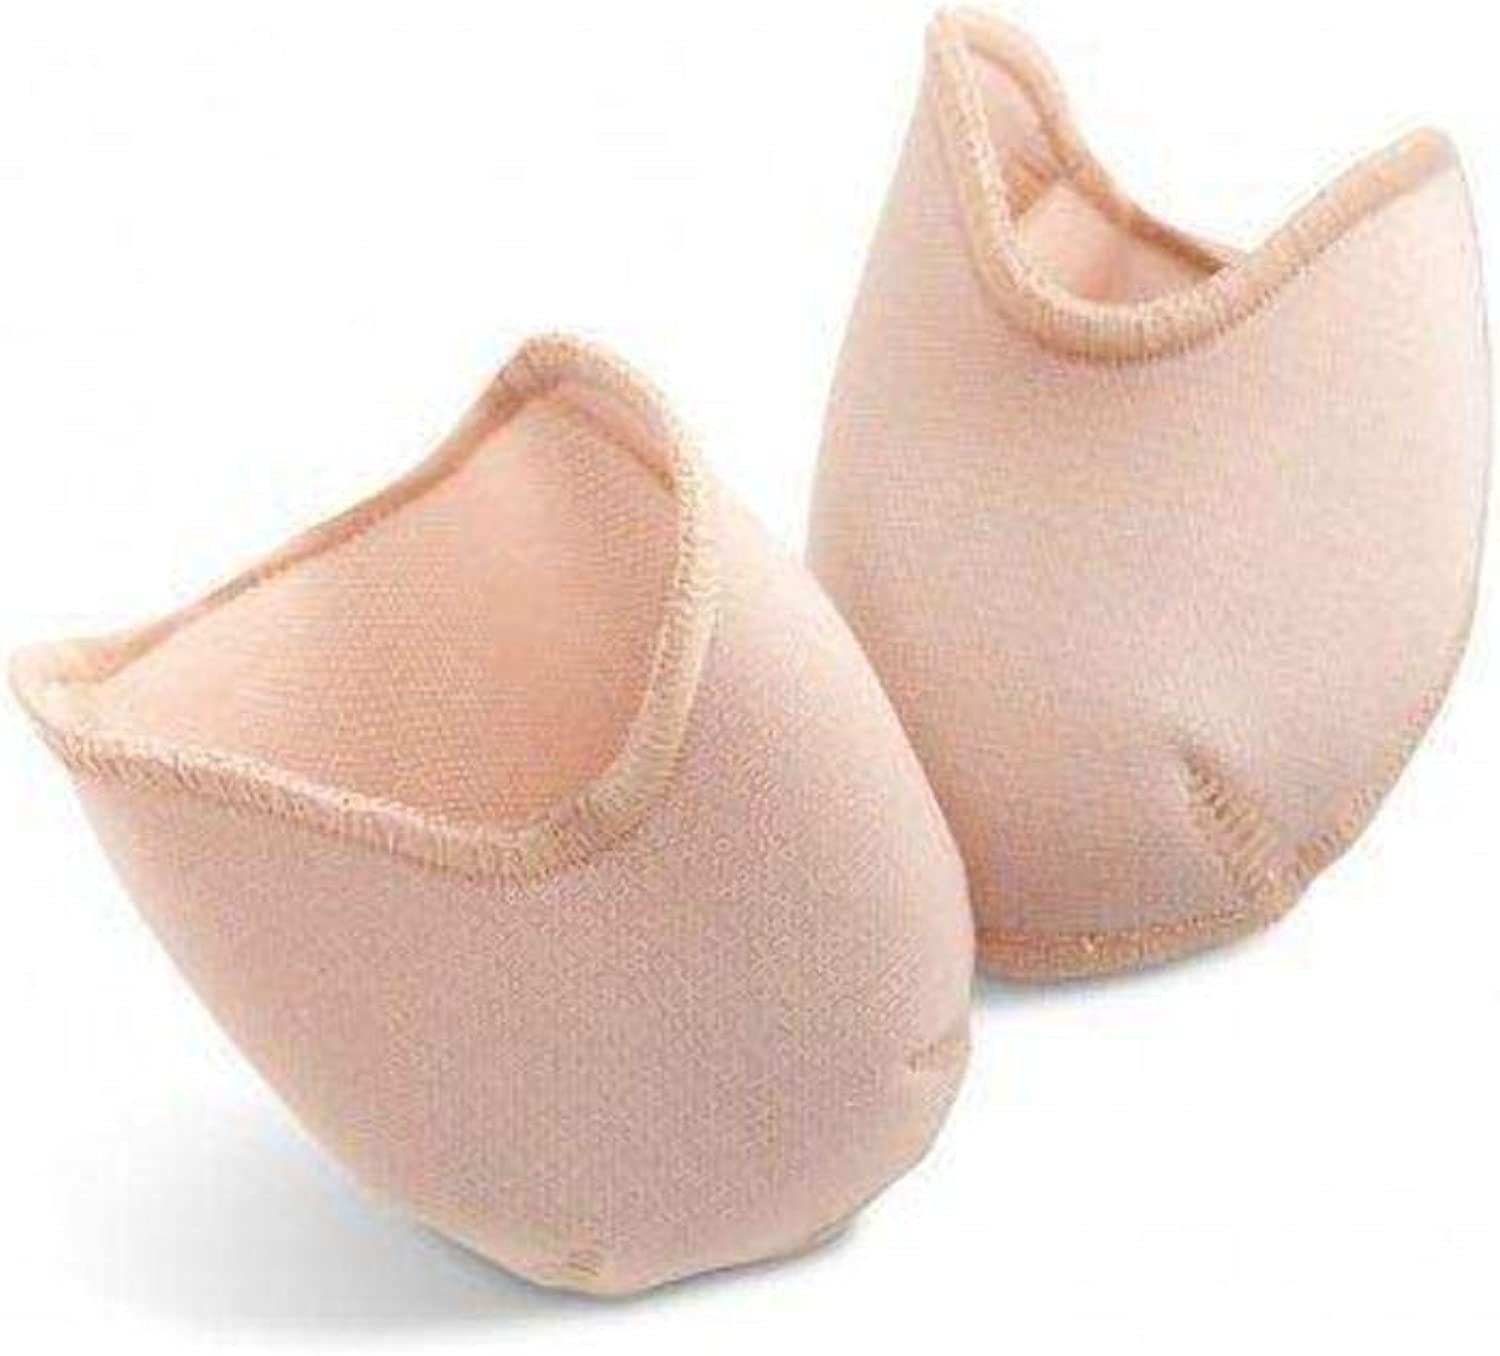 Capezio Womans Bunheads Dance Accessories PRO PAD, Cushiony Fabric Covered Gel Toes Pads, NUD, S